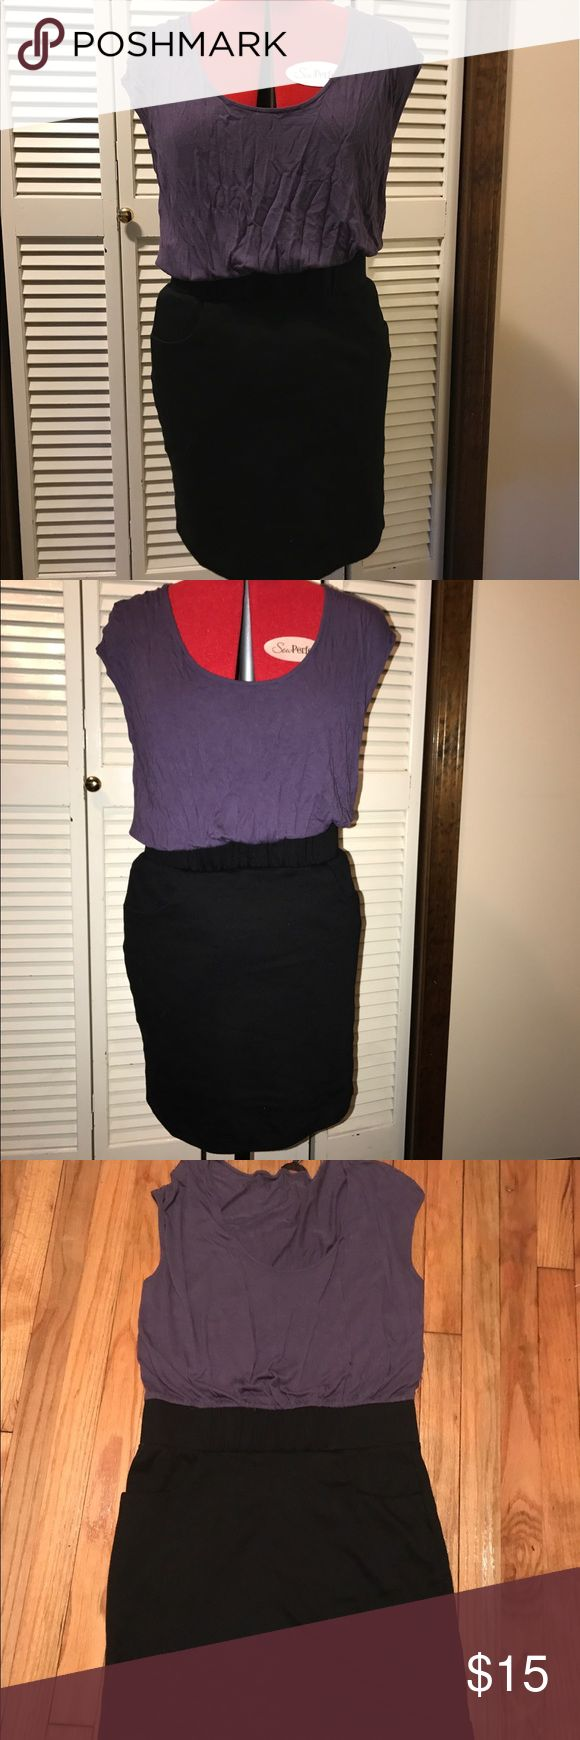 BLACK AND PURPLE DRESS A black skirt with a blousie purple top that are connected. It's got pockets!! The skirt isn't too tight but lays nicely and the purple is a thin fabric that doesn't hug. Daisy Fuentes Dresses